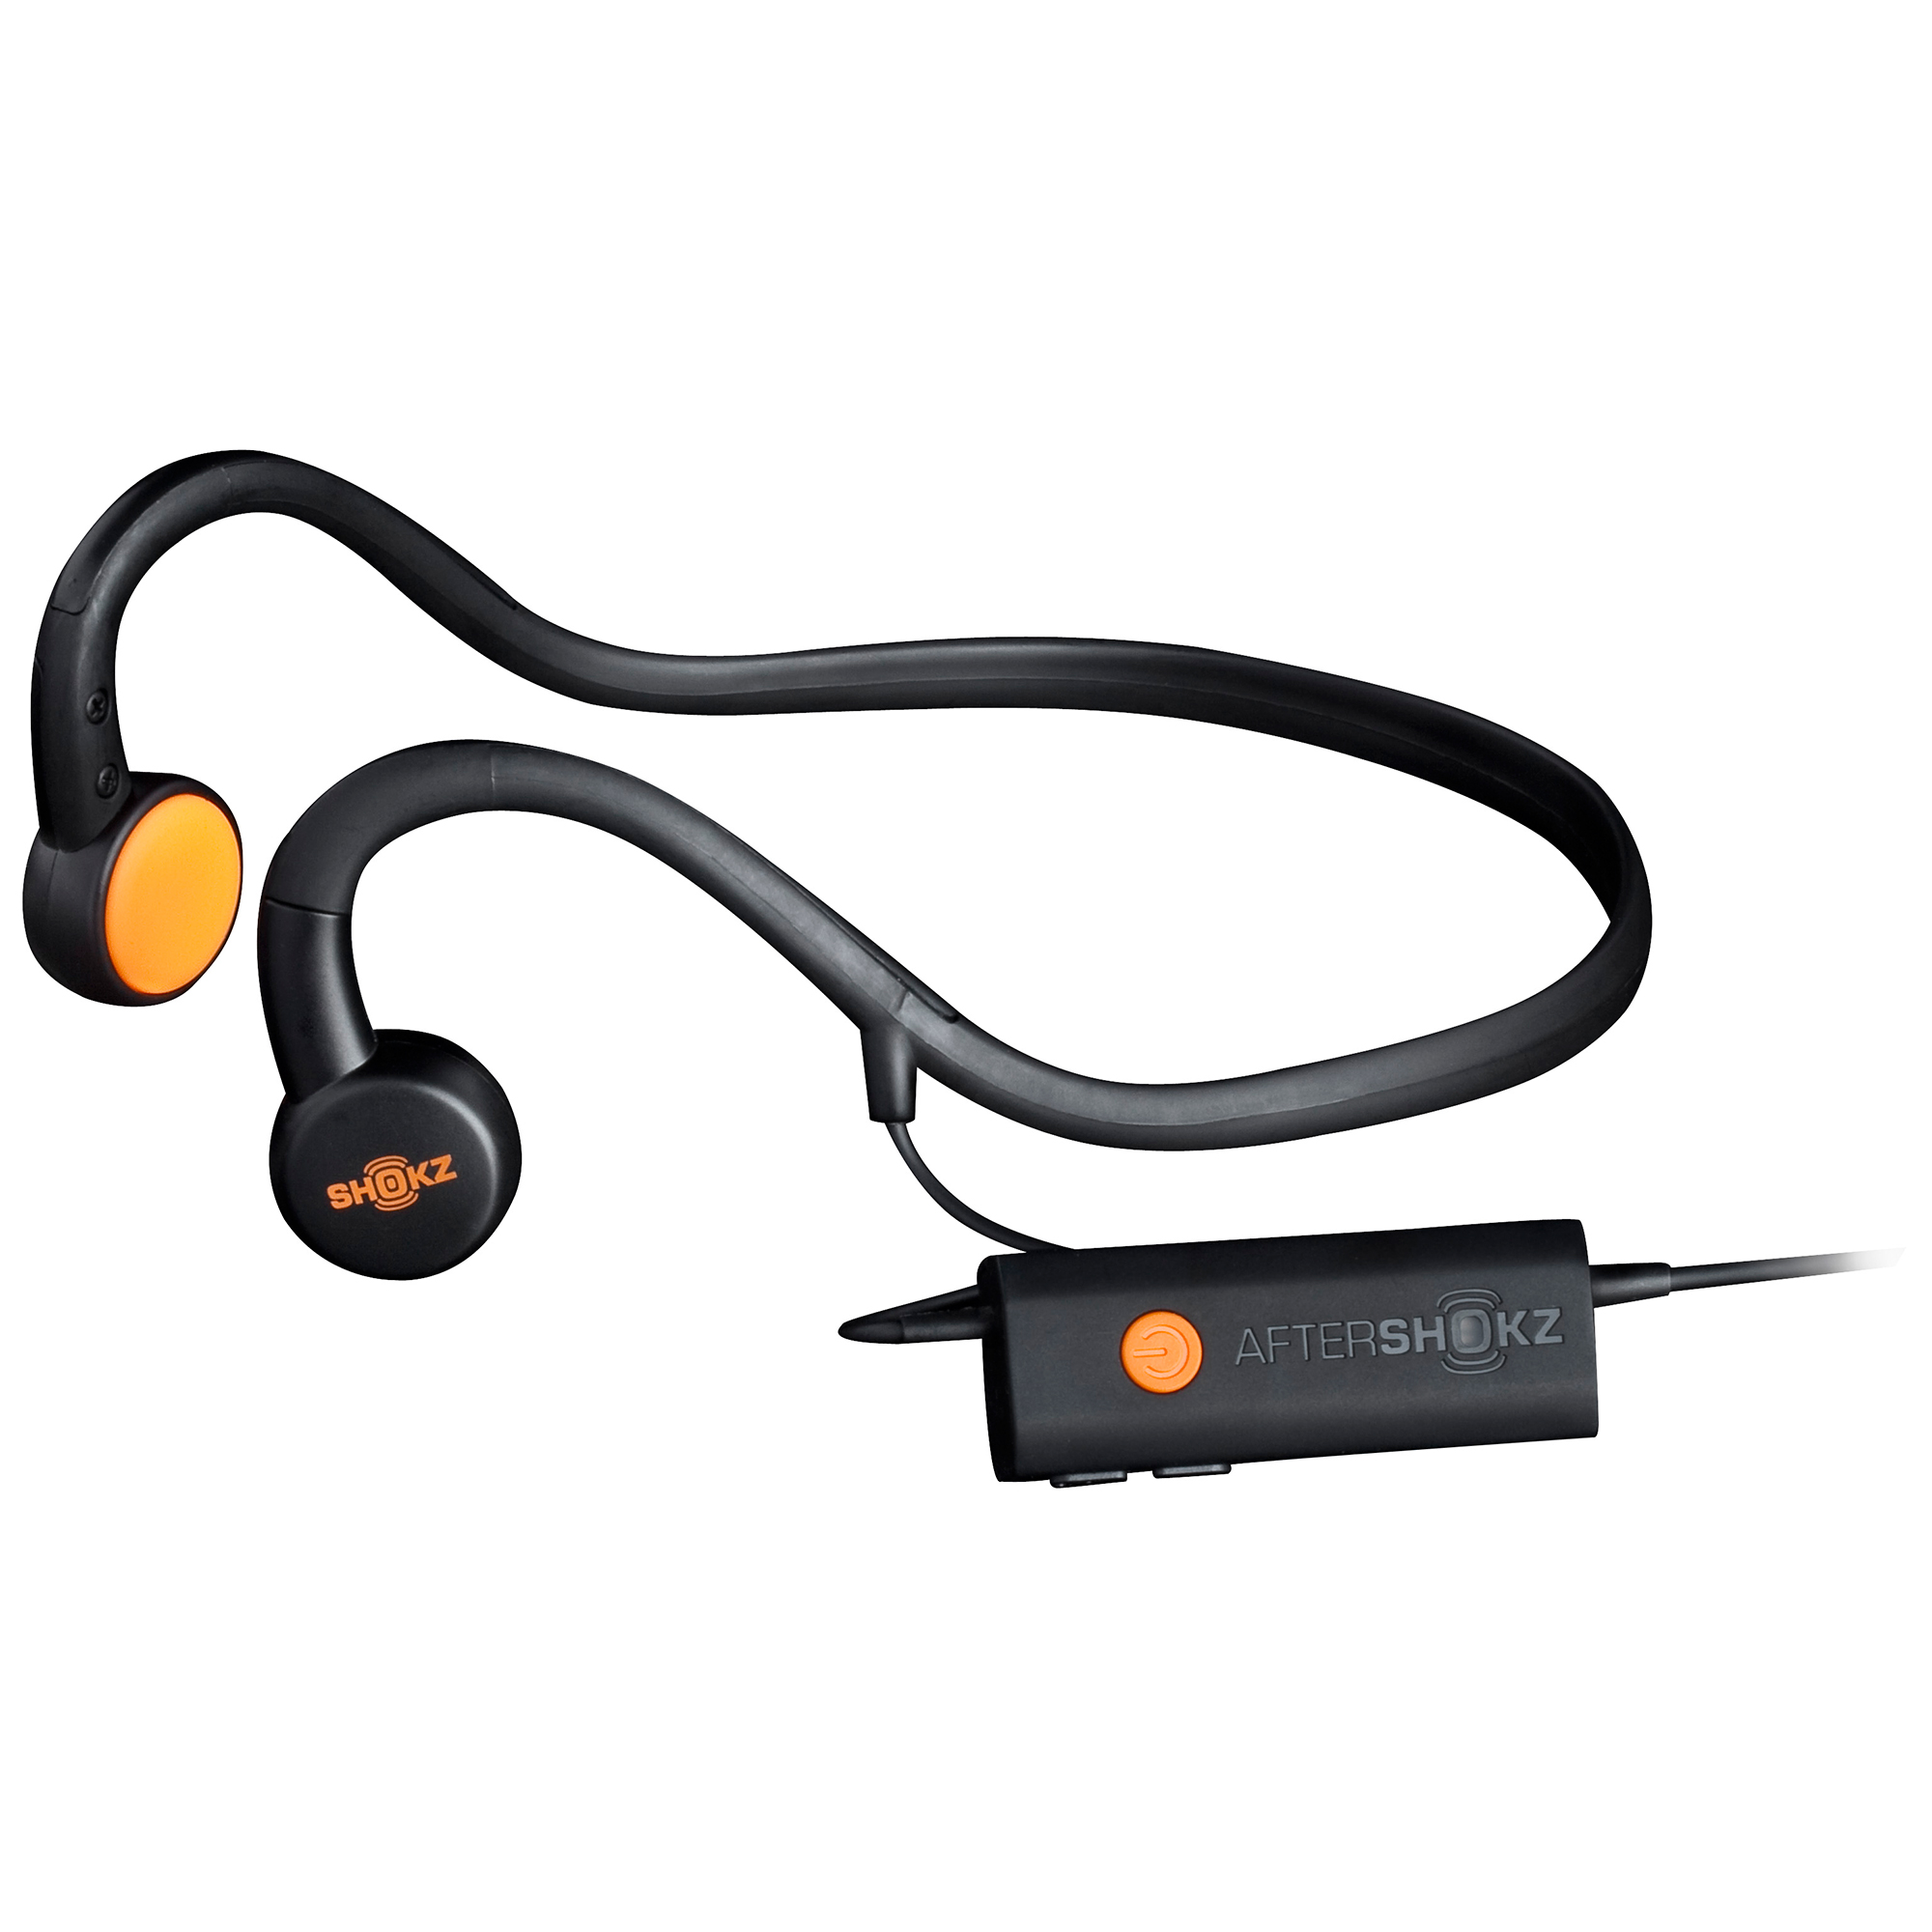 Image of AfterShokz Sportz 3 Open Ear Sport Headphones